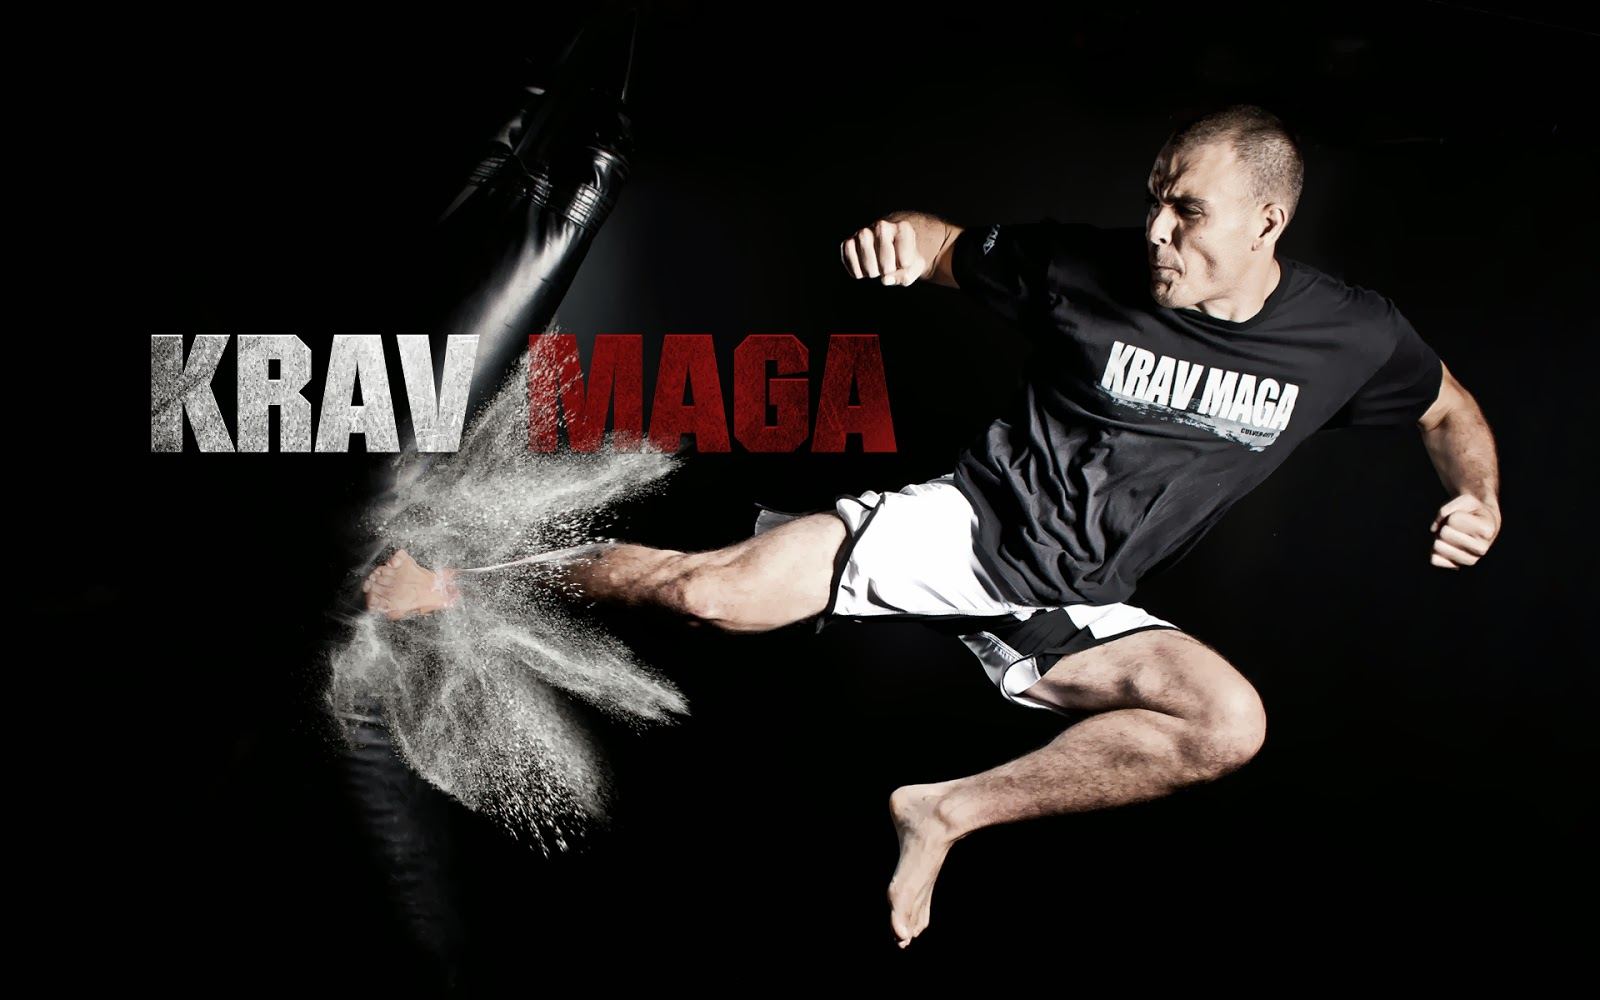 Co to jest krav maga?